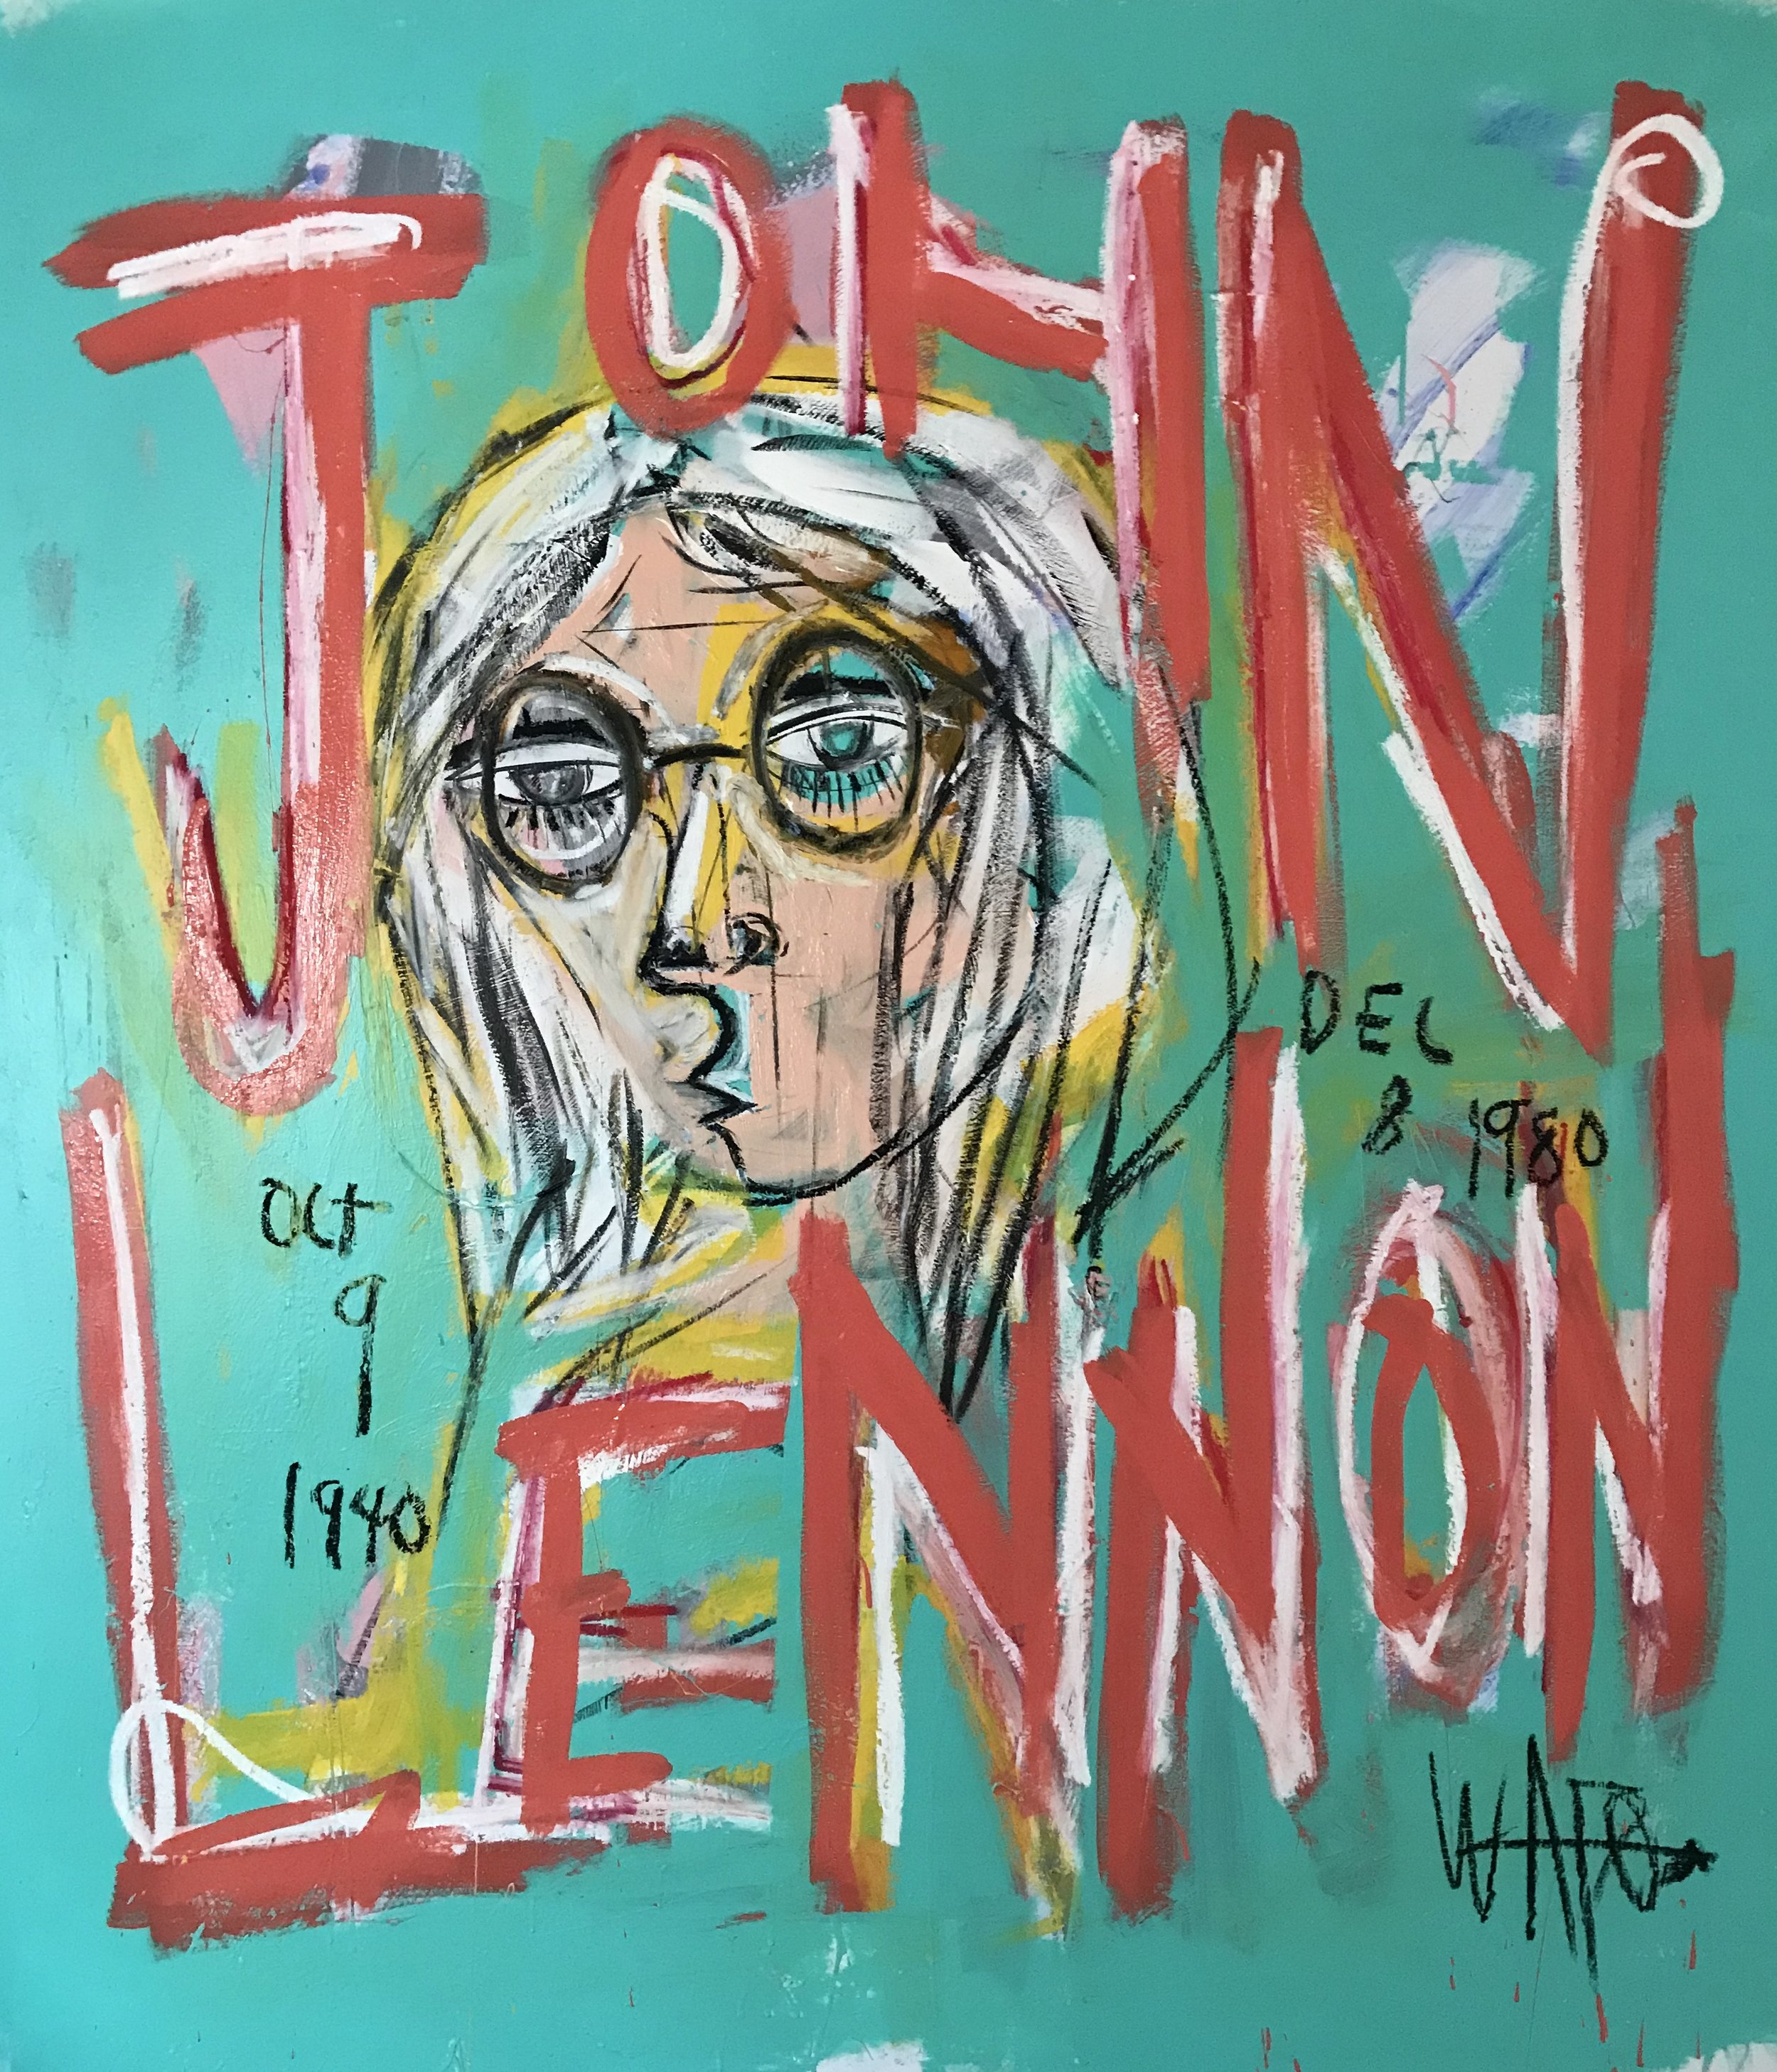 John Lennon . SOLD